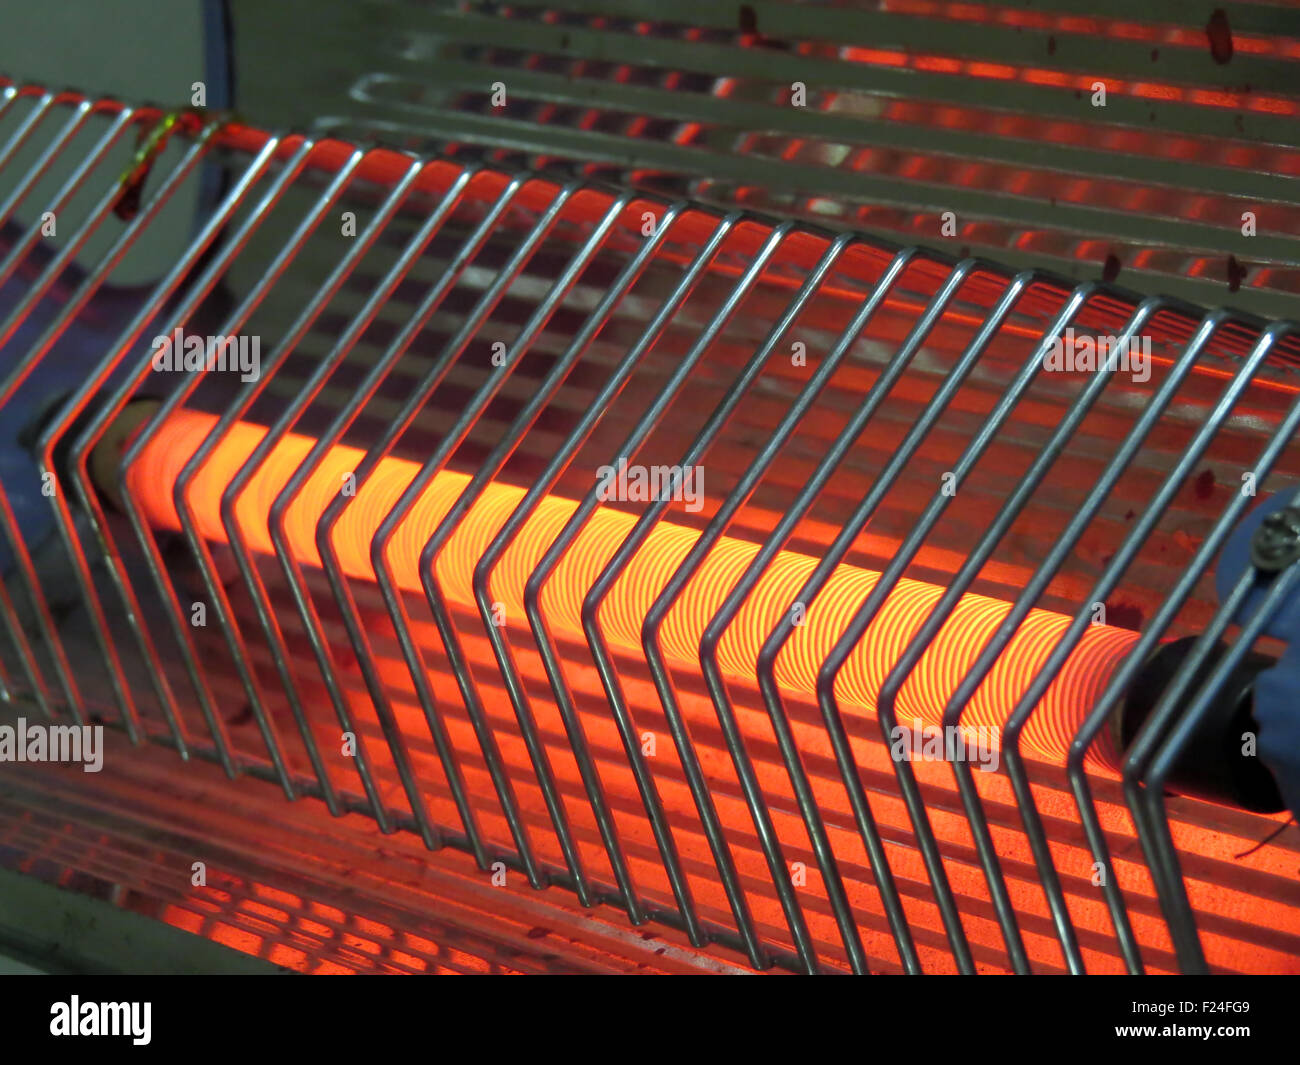 A closeup view of an electric heater coil which is red hot after being at high temperature - Stock Image